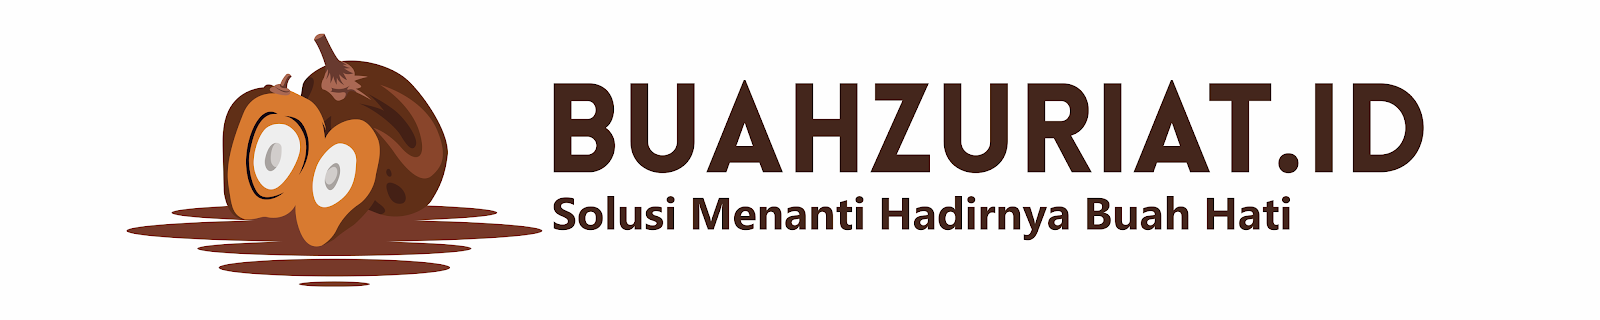 0813-3465-6200 - Supplier Buah Zuriat Indonesia